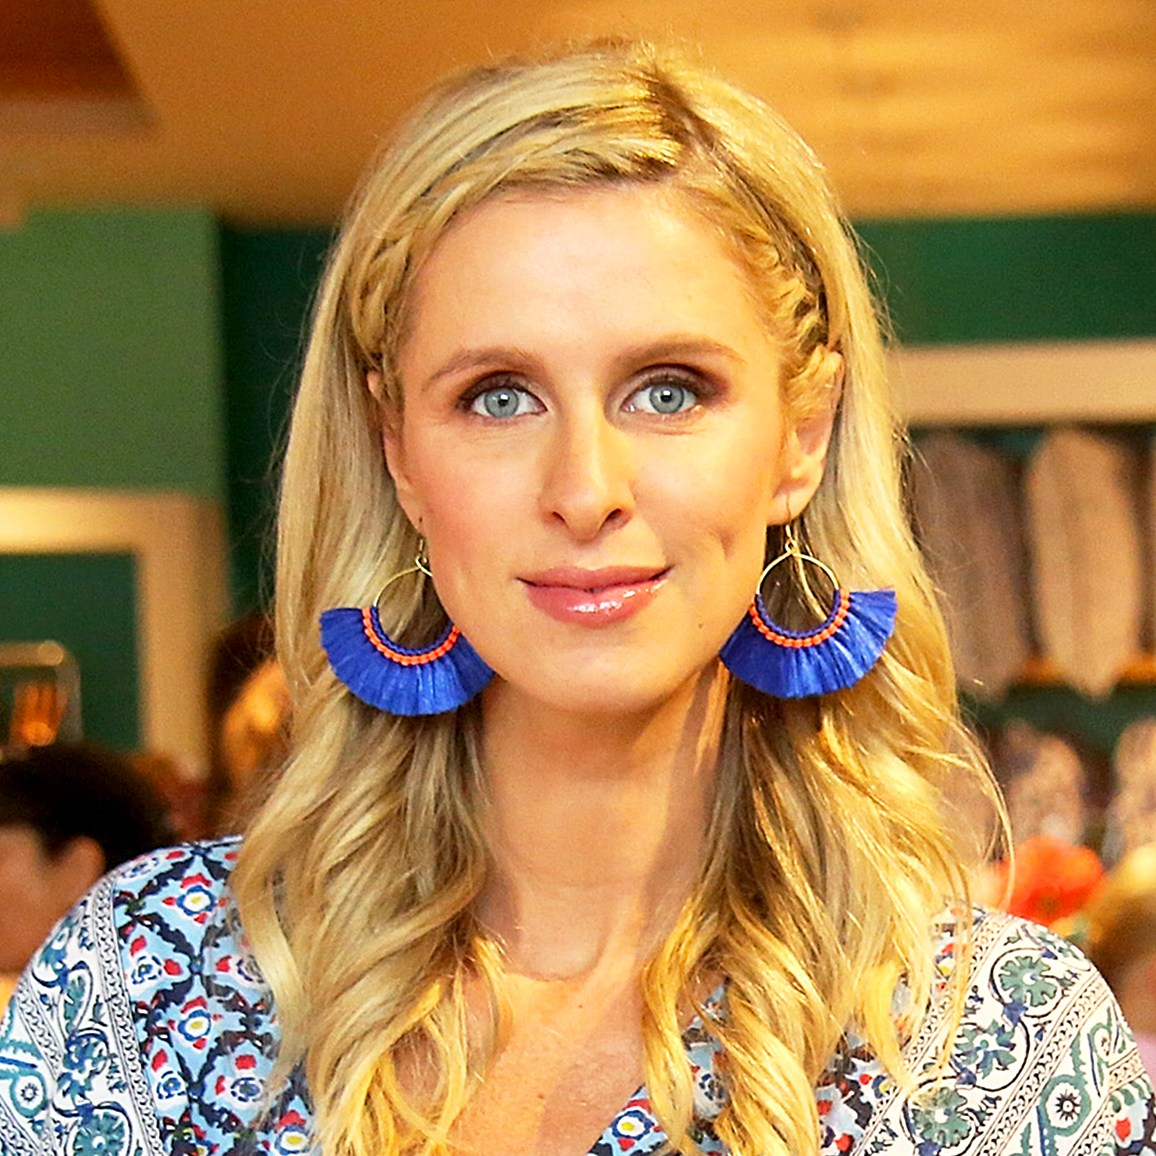 Nicky Hilton attends the Roller Rabbit Charity Shopping Event to benefit Animal Haven in East Hampton, New York.